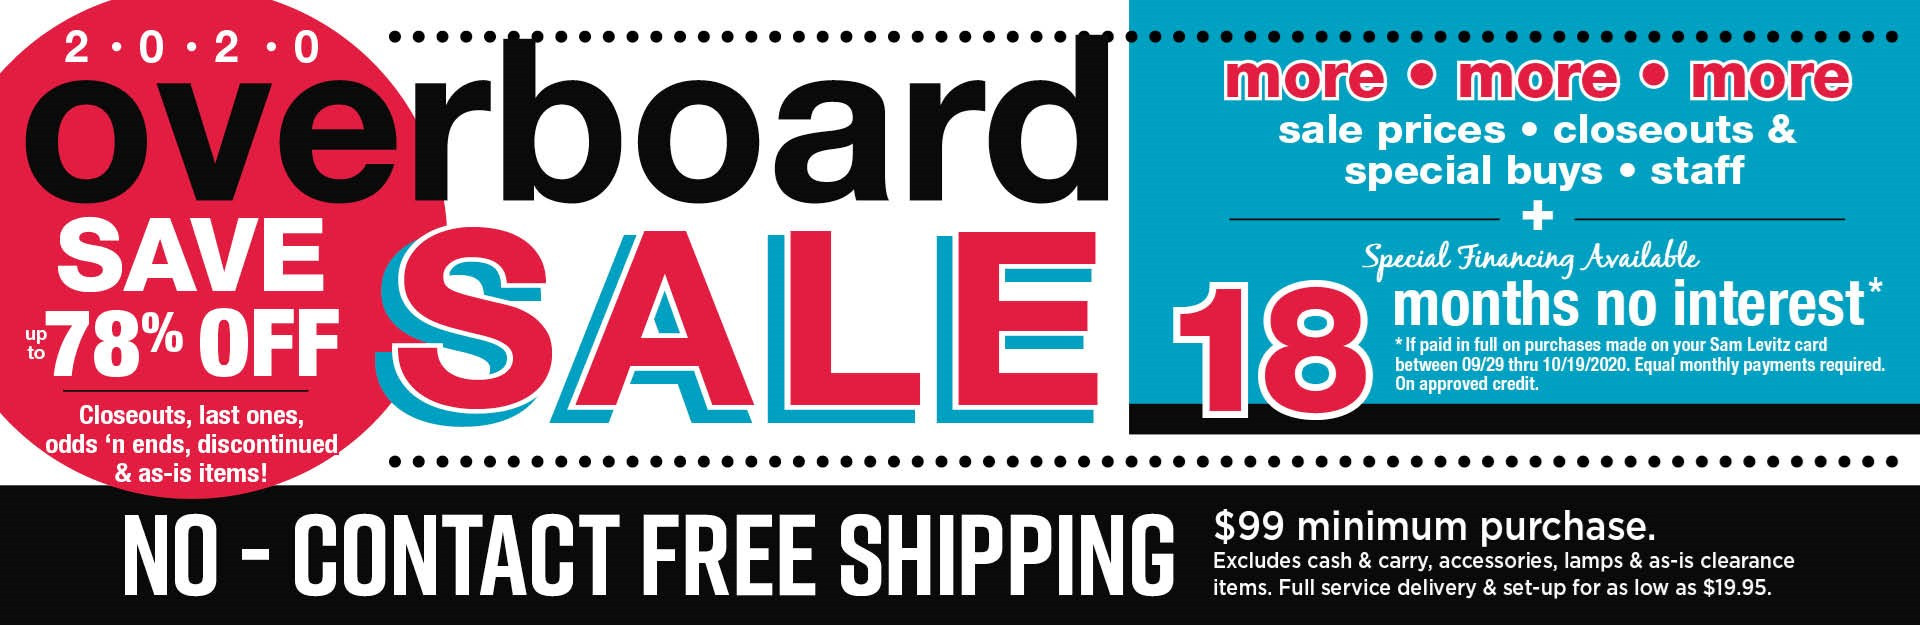 overboard-sale